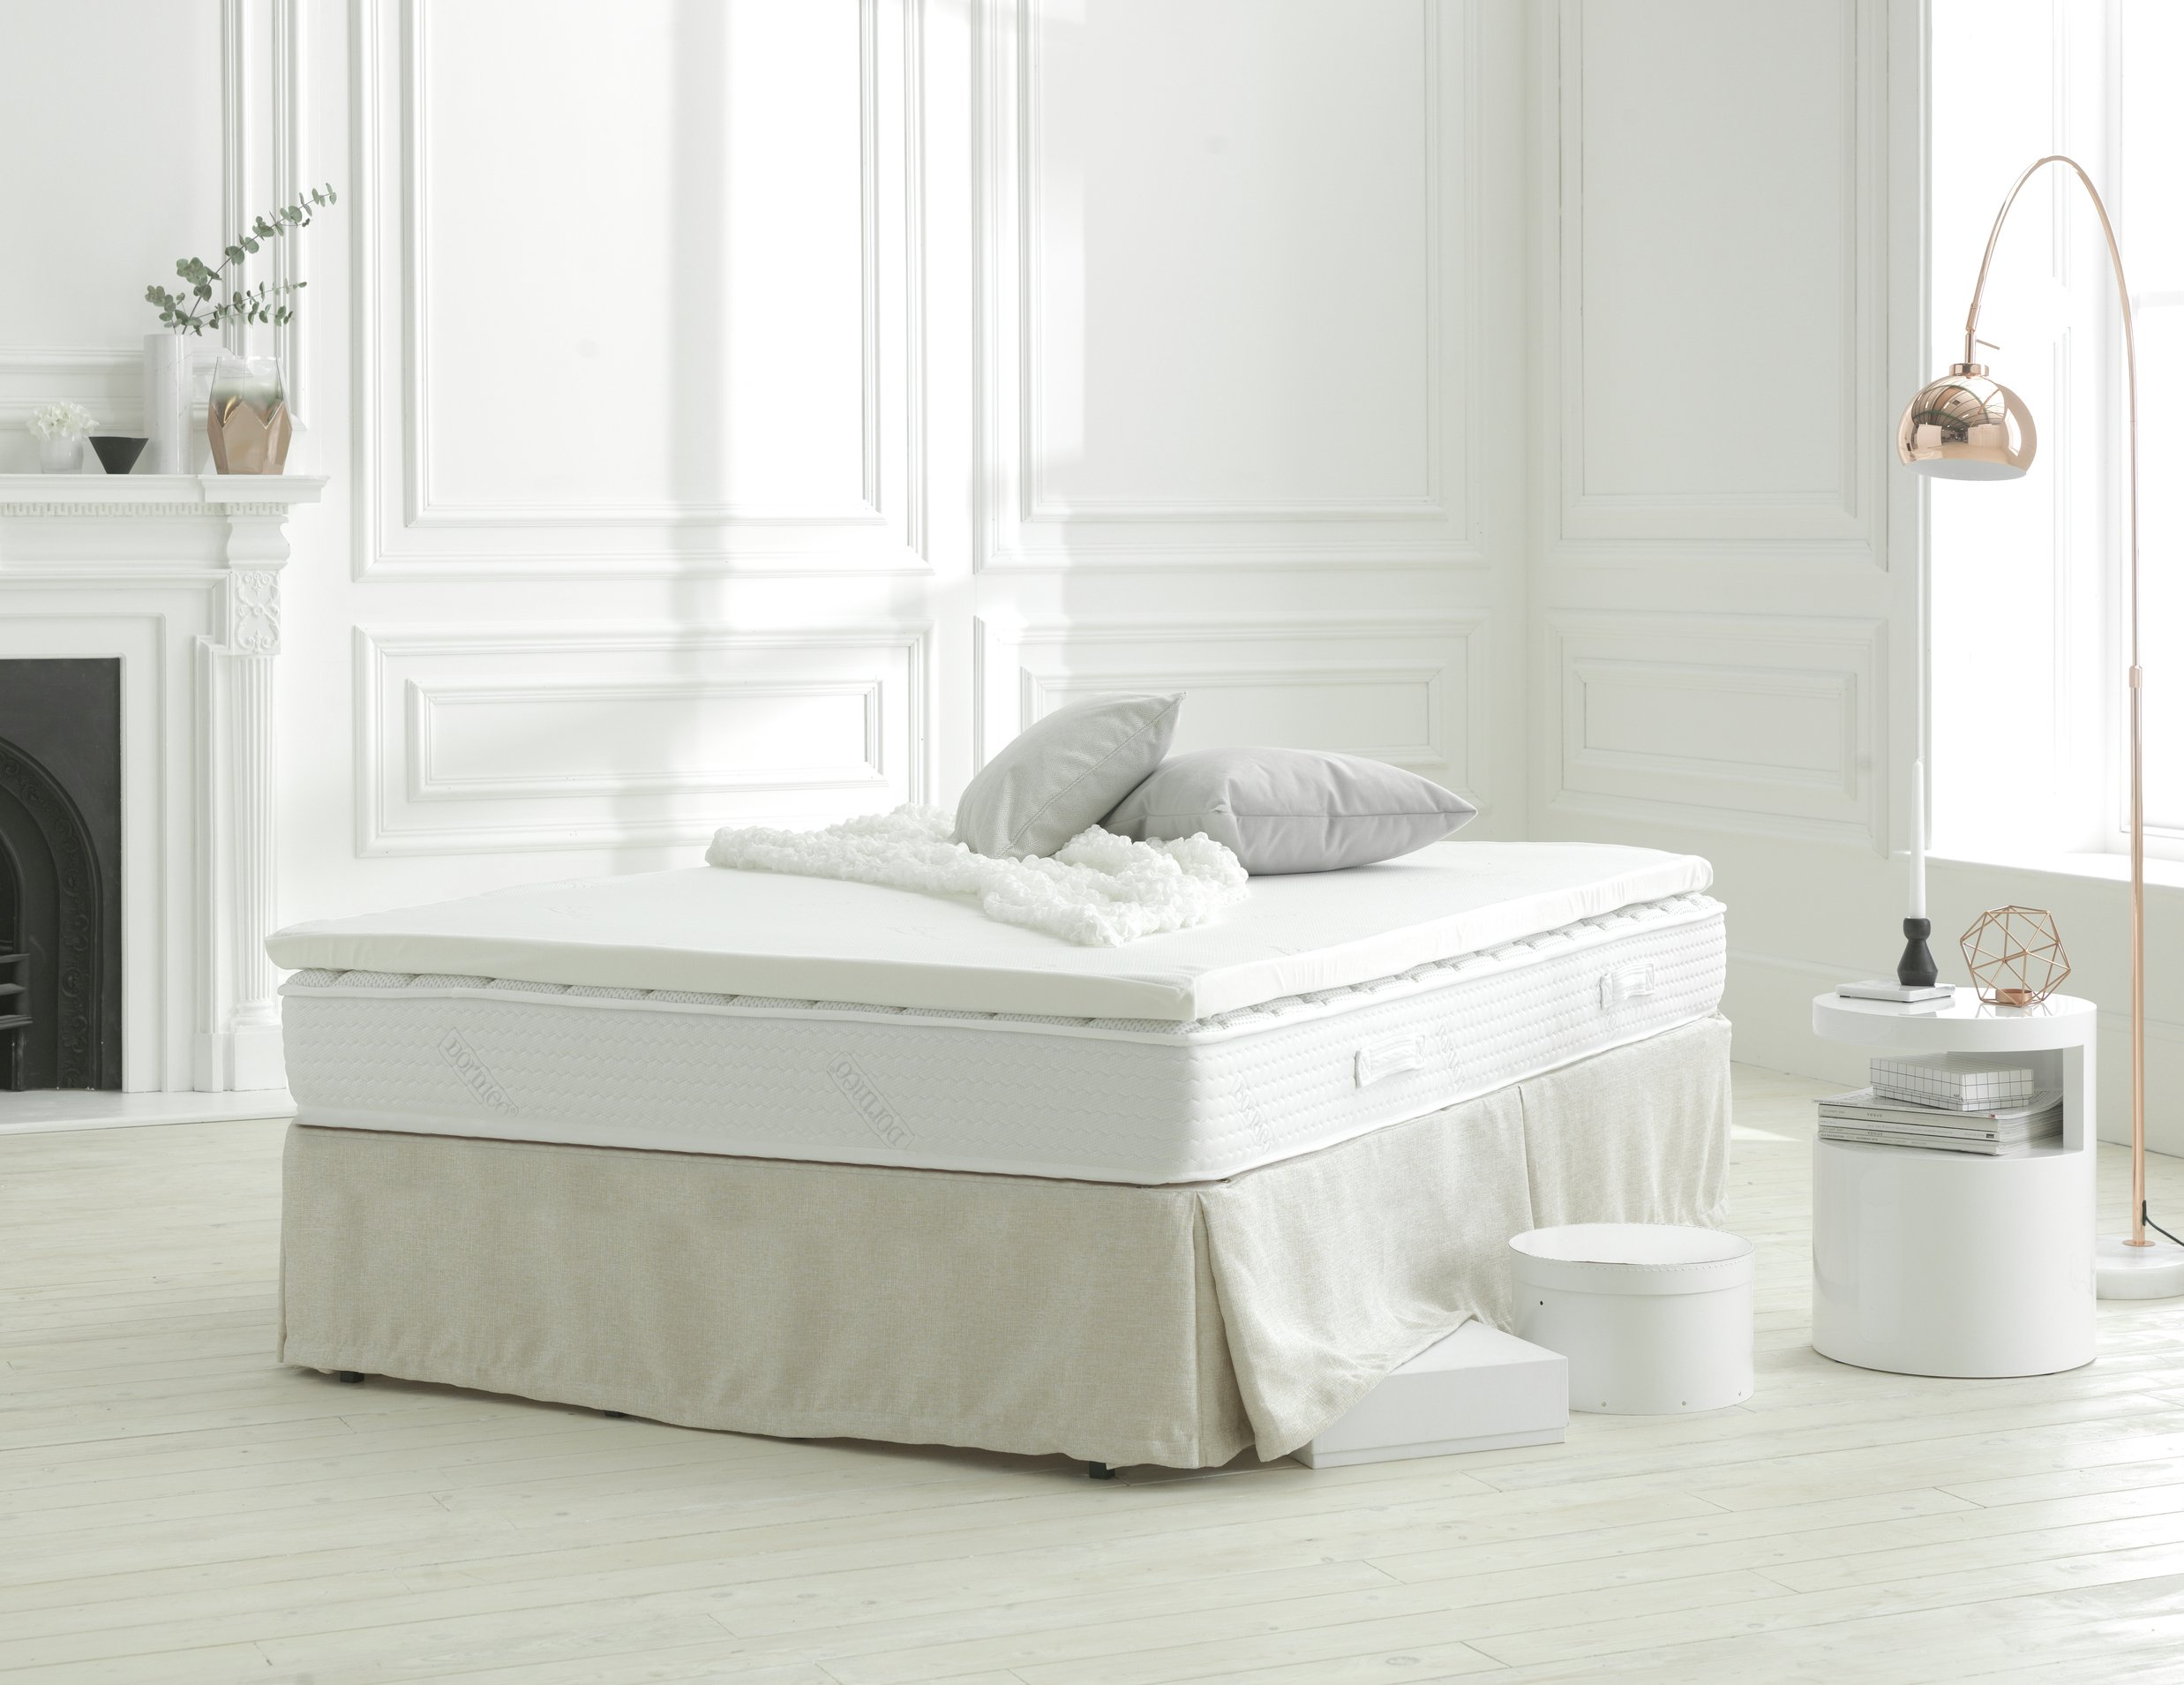 Image of Dormeo Renew Memory Mattress Topper - Superking